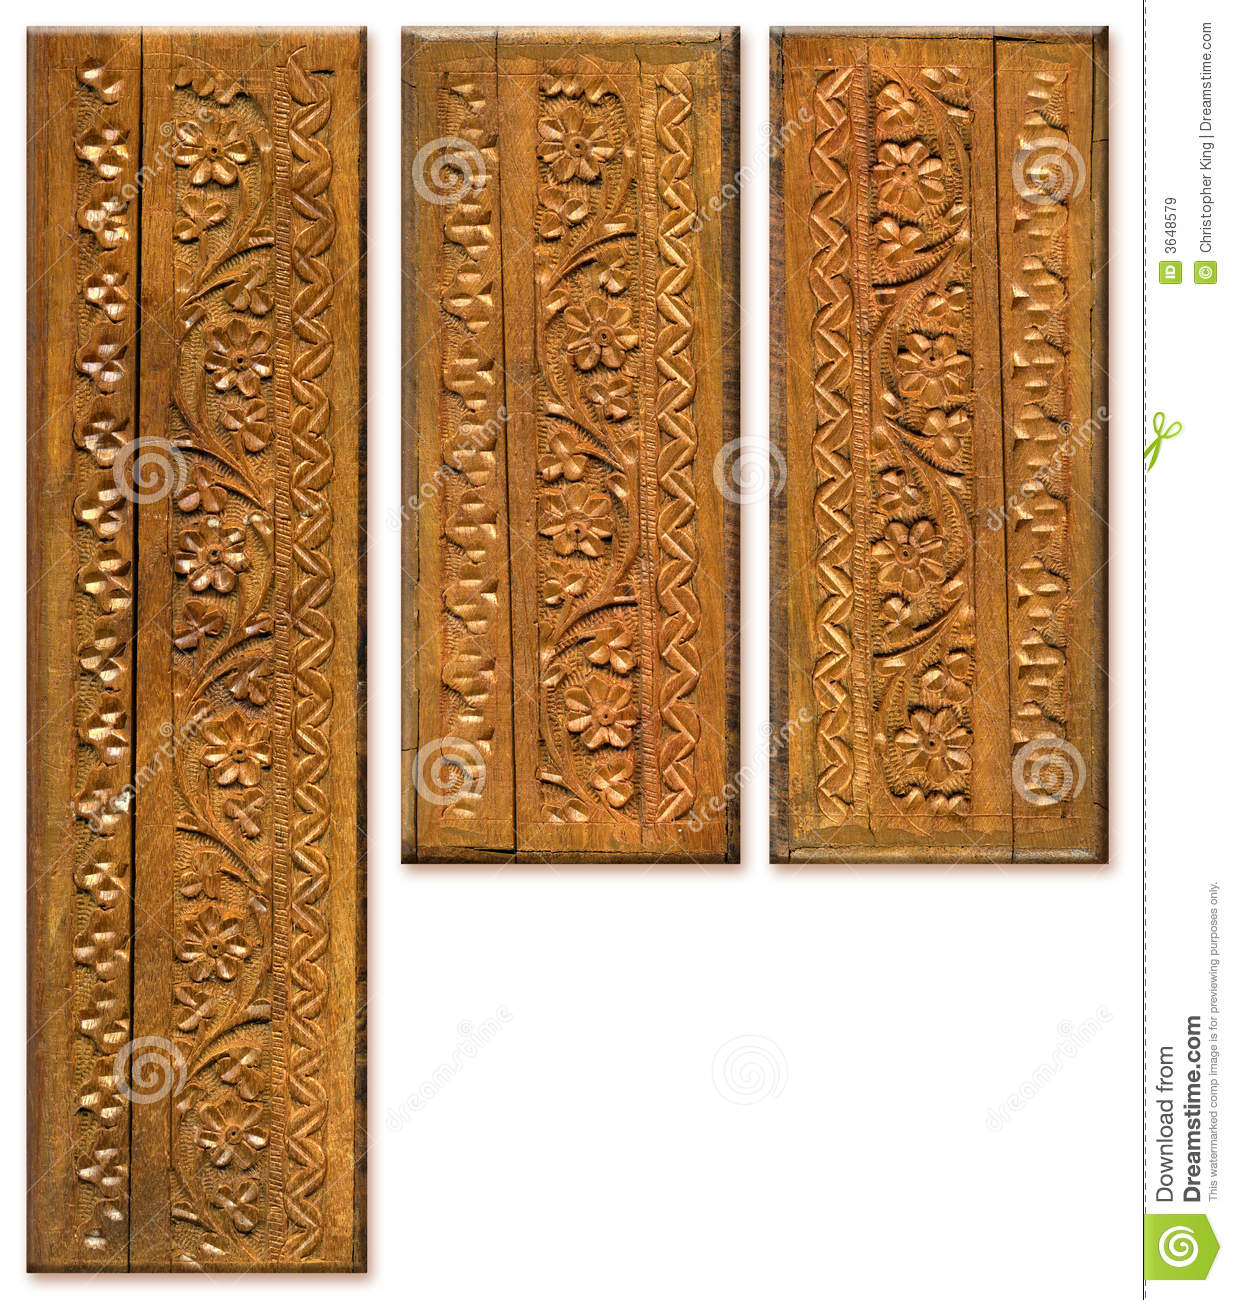 Wood carving pattern design elements royalty free stock images image 3648579 - Design on wooden ...